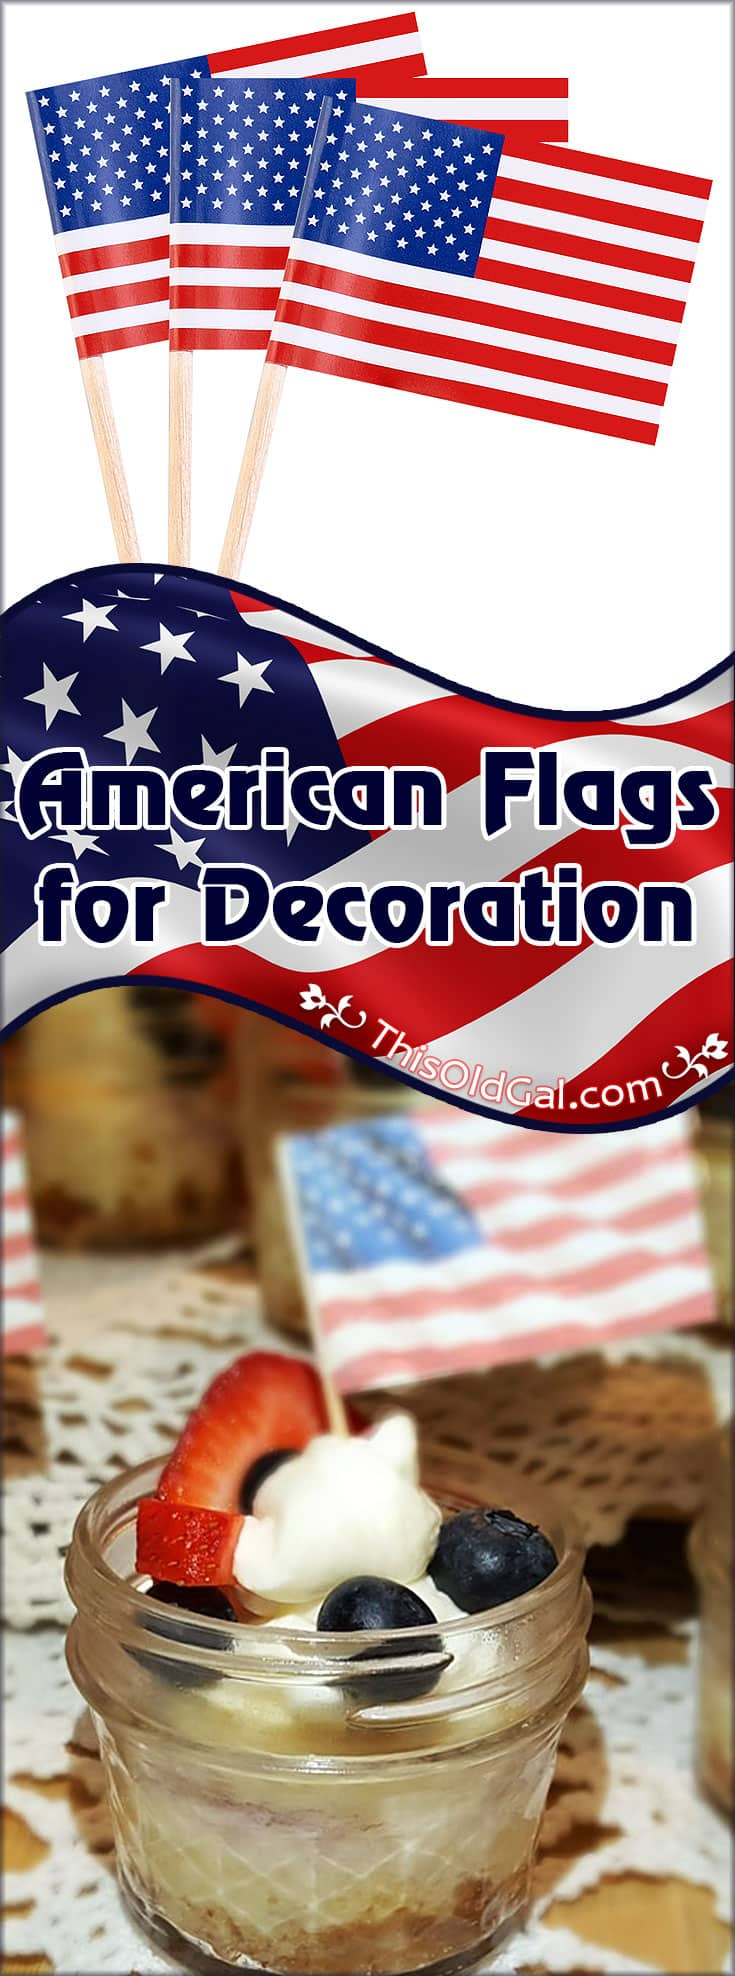 American Flags for Decoration